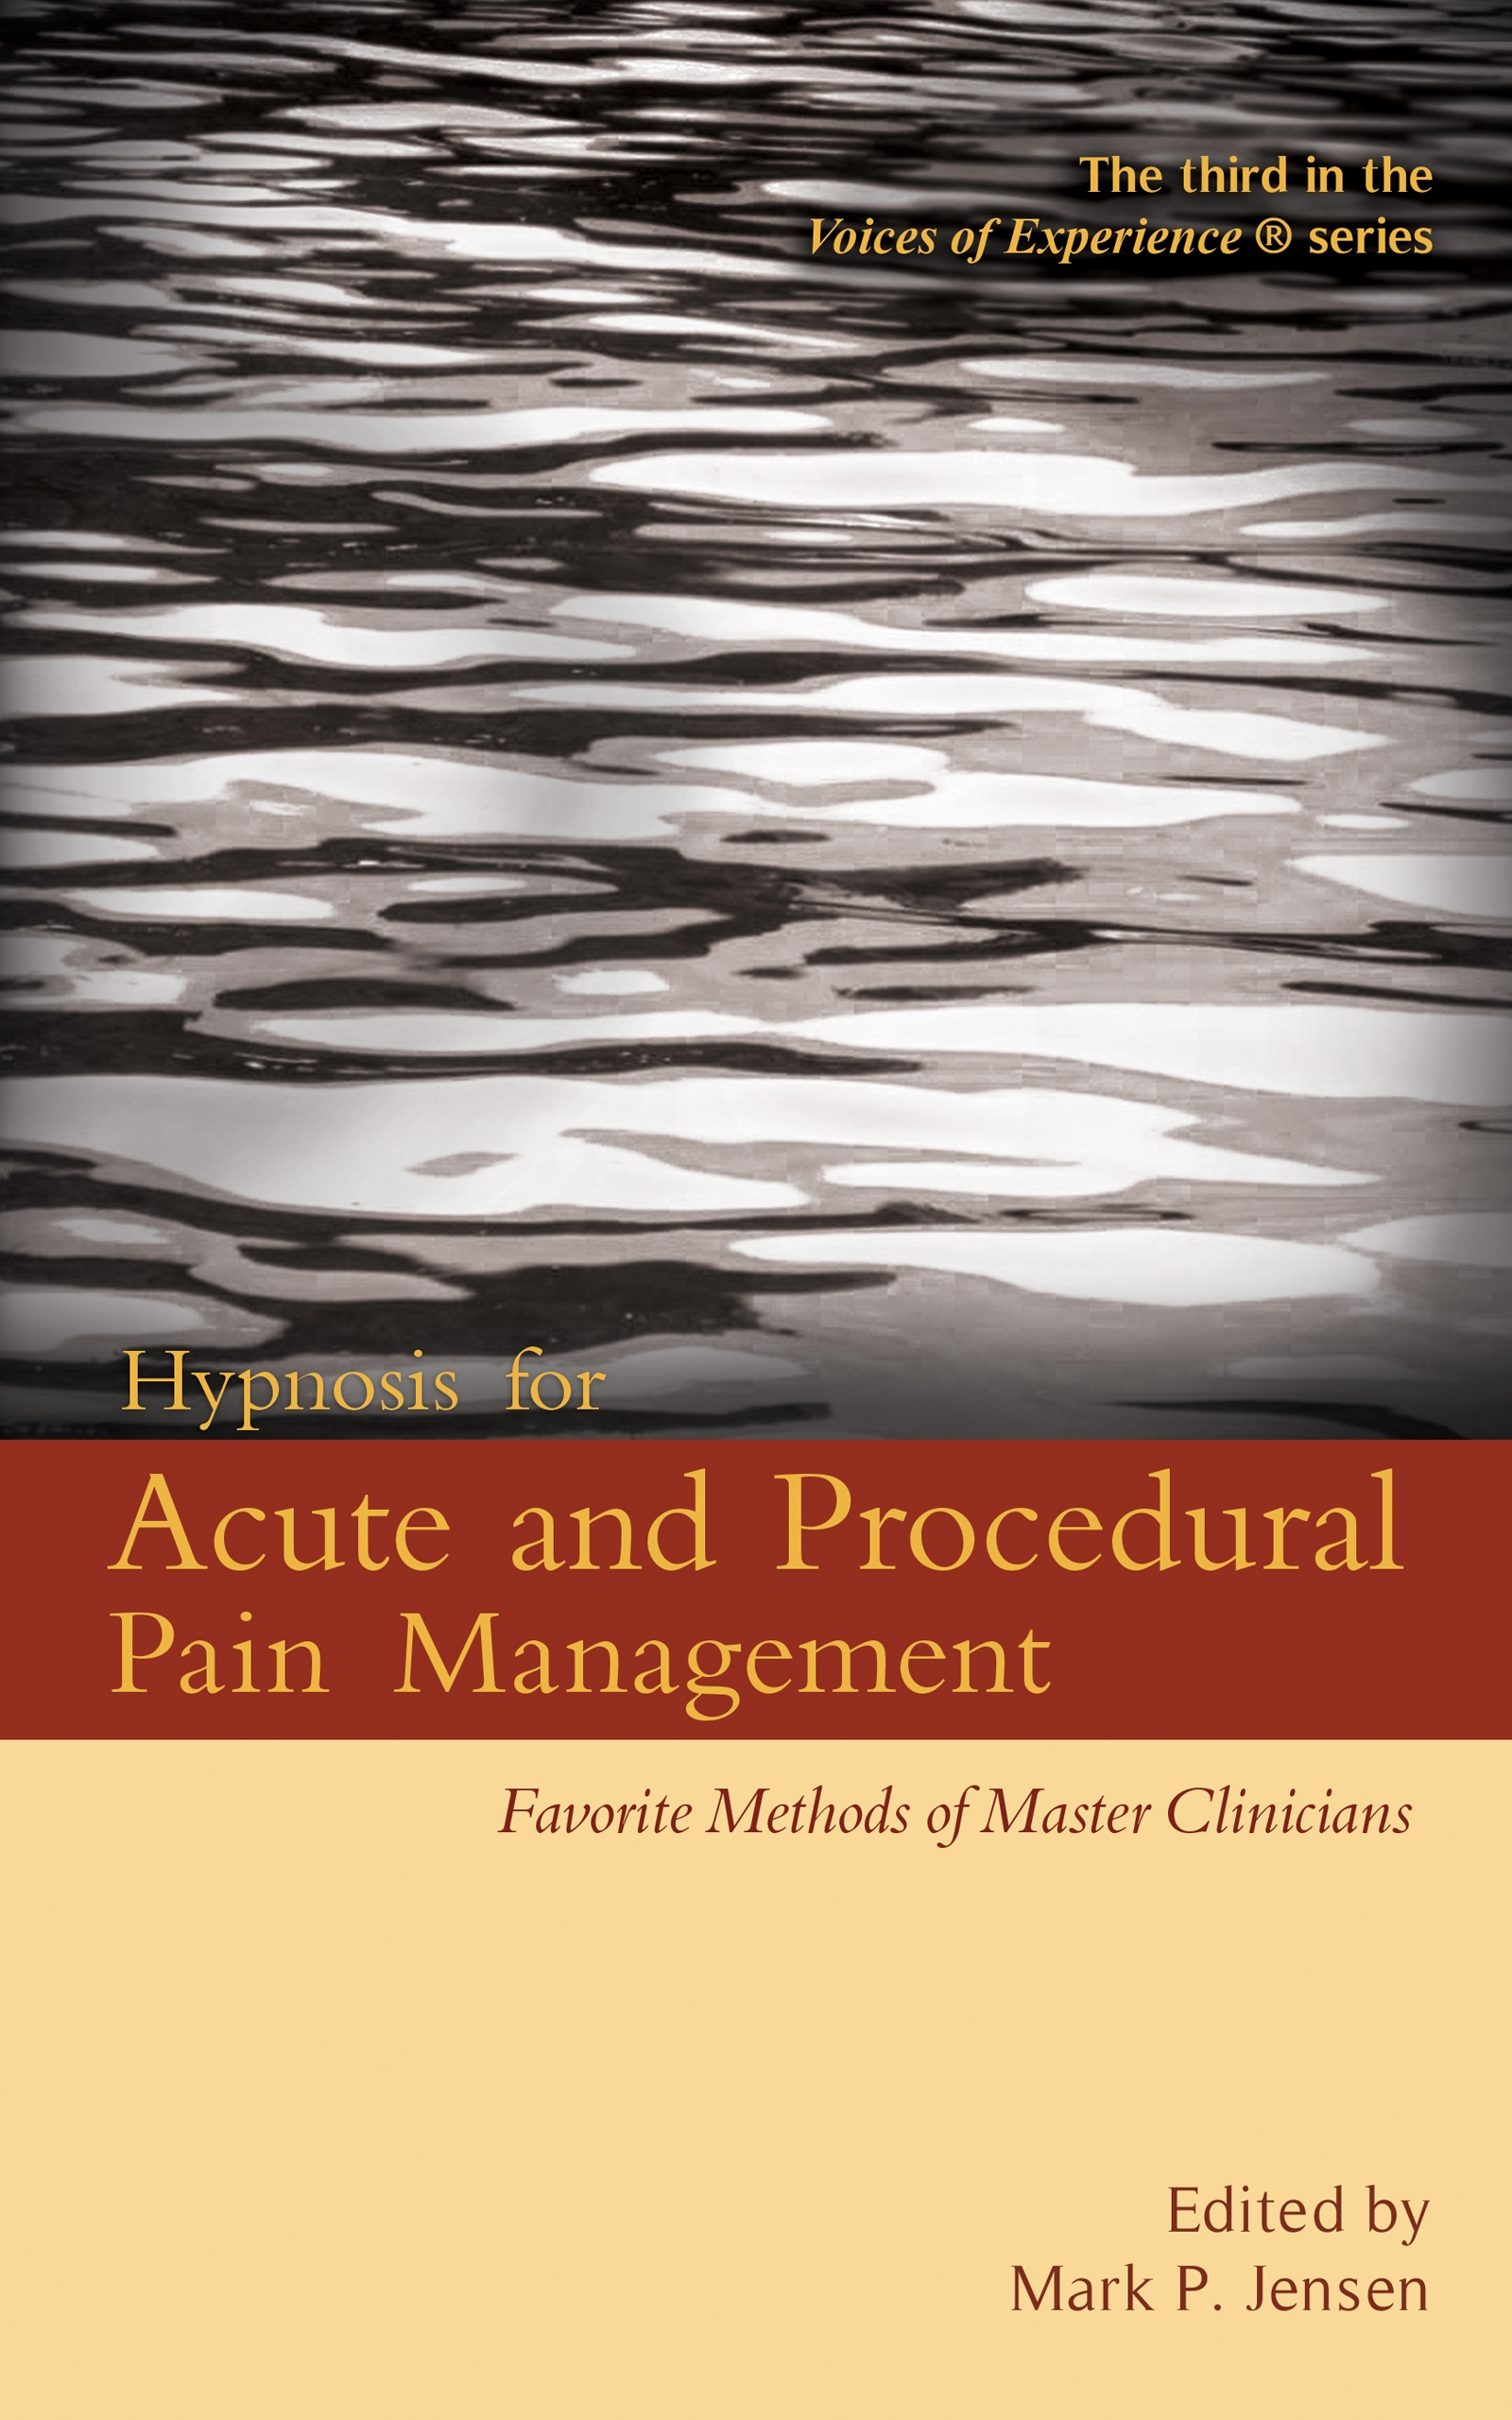 Hypnosis for Acute and Procedural Pain Management: Favorite Methods of Master Clinicians - Edited by Mark P. JensenHypnosis has been proven to be effective for reducing the pain associated with acute injuries and medical procedures. In this edited volume, written by and for clinicians, ten highly experienced physicians, psychologists, and therapists from around the world describe the hypnotic strategies they have found to be most effective for acute pain management.The 3rd in the Voices of Experience series